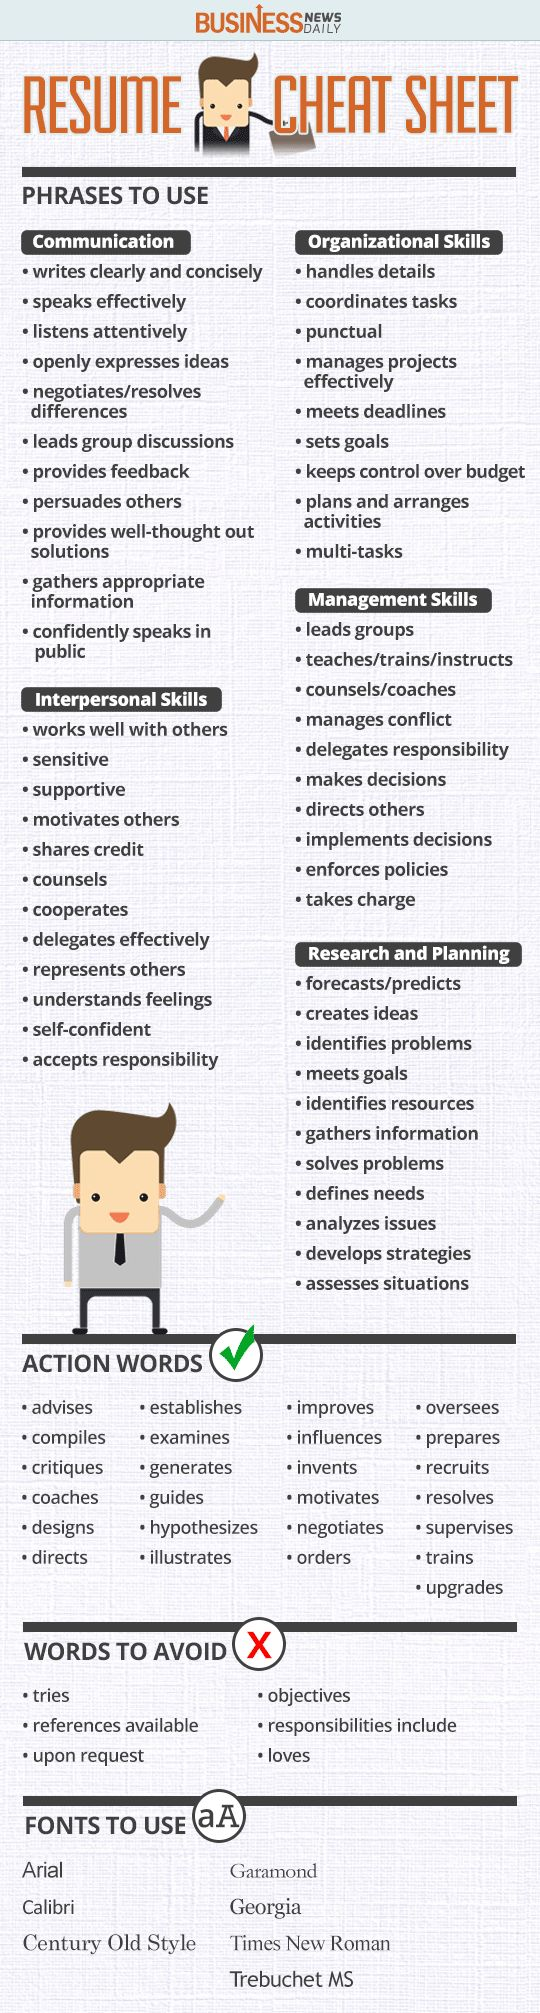 Opposenewapstandardsus  Unusual  Ideas About Resume On Pinterest  Cv Format Resume Cv And  With Foxy Resume Cheat Sheet Infographic Andrews Almost Done With A Complete Unit On Employment Which With Appealing Resume Accomplishments Examples Also Sample Resumes For Customer Service In Addition Killer Resume And Front End Web Developer Resume As Well As Hvac Resume Samples Additionally Senior Business Analyst Resume From Pinterestcom With Opposenewapstandardsus  Foxy  Ideas About Resume On Pinterest  Cv Format Resume Cv And  With Appealing Resume Cheat Sheet Infographic Andrews Almost Done With A Complete Unit On Employment Which And Unusual Resume Accomplishments Examples Also Sample Resumes For Customer Service In Addition Killer Resume From Pinterestcom